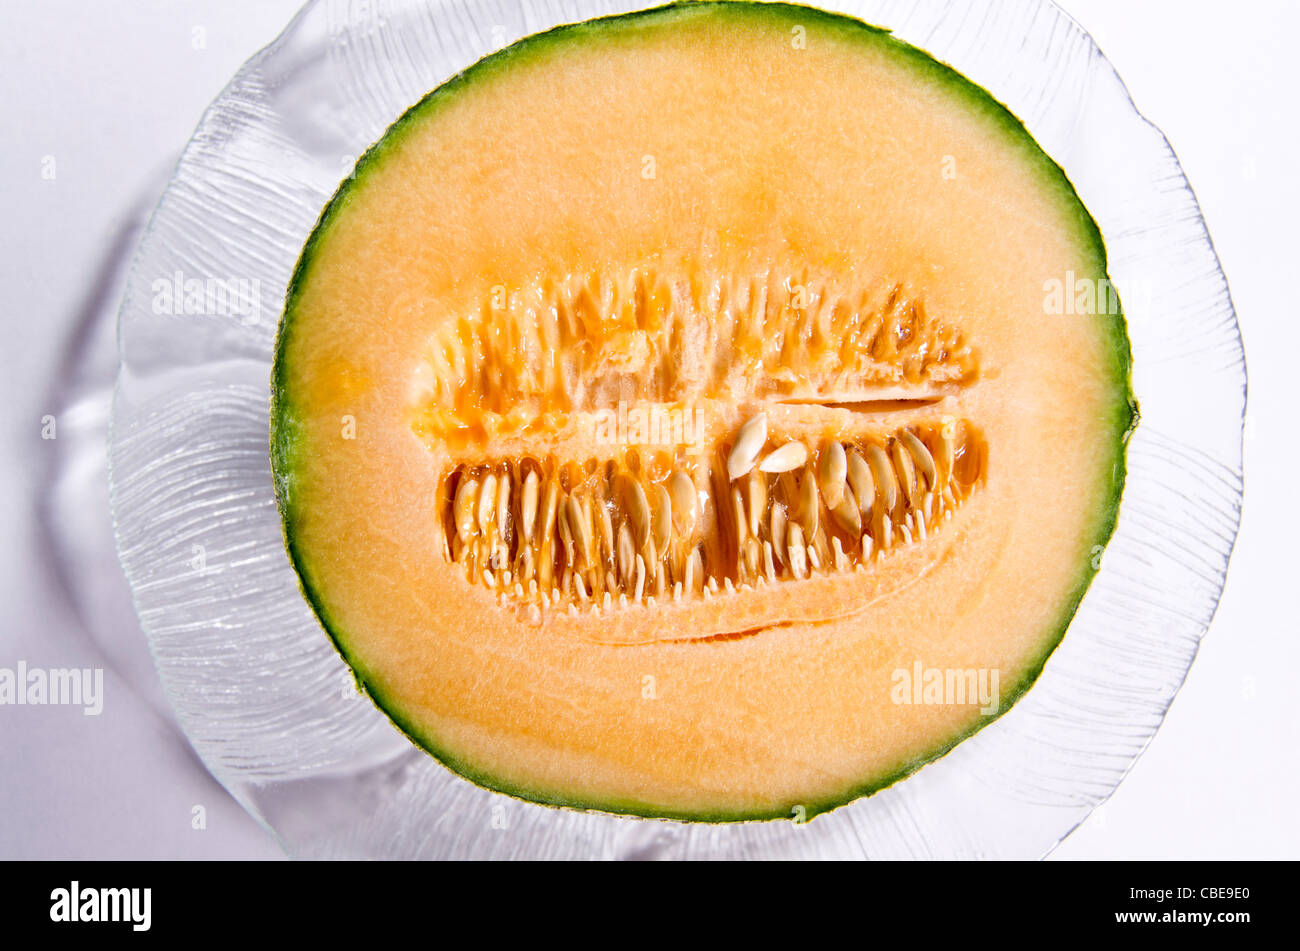 Half A Cantaloupe Cut Open Seeds Inside Sitting On A Glass Plate Stock Photo Alamy Cantaloupes are an excellent source of vitamin c and a. https www alamy com stock photo half a cantaloupe cut open seeds inside sitting on a glass plate 41496728 html